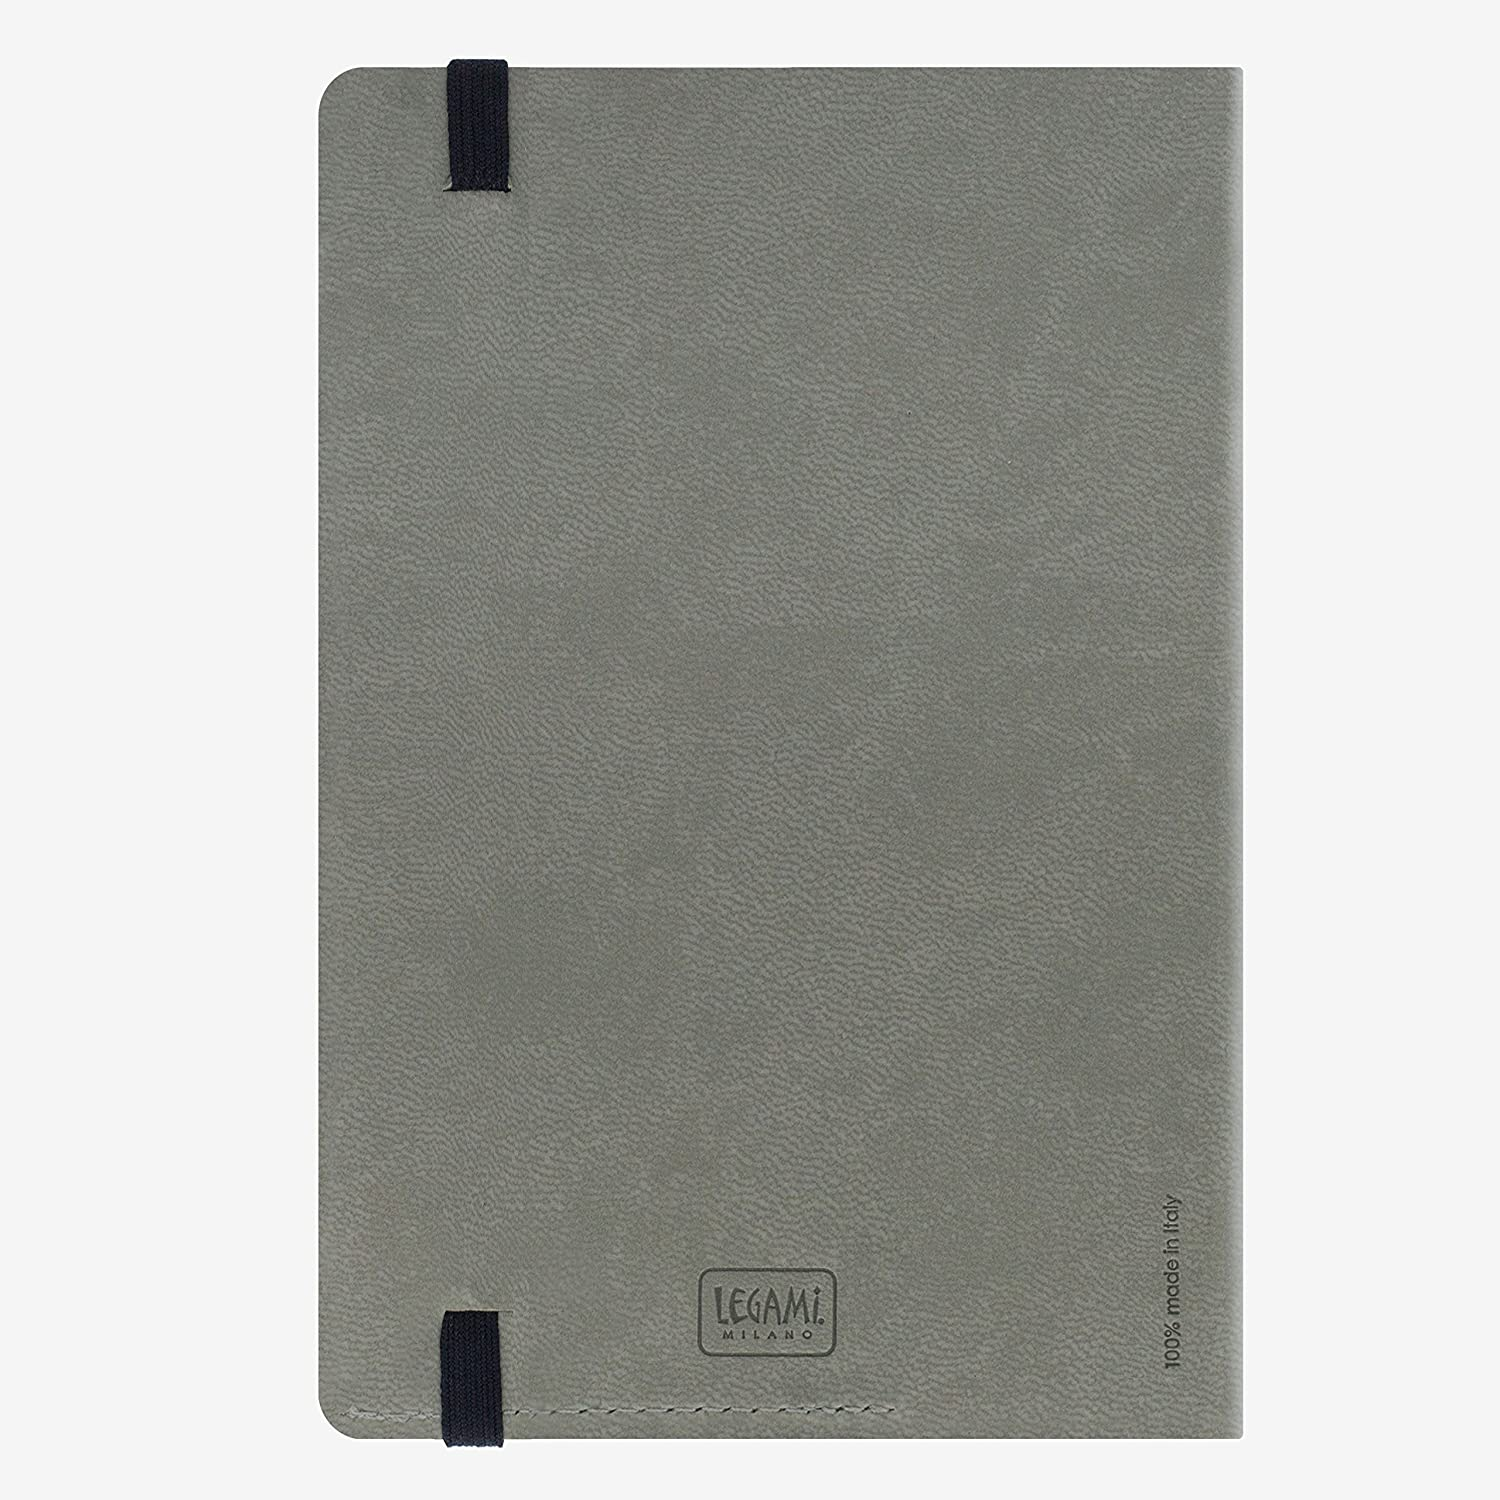 Amazon.com : Links ag121740 Agenda 12 Months, Grey : Office ...